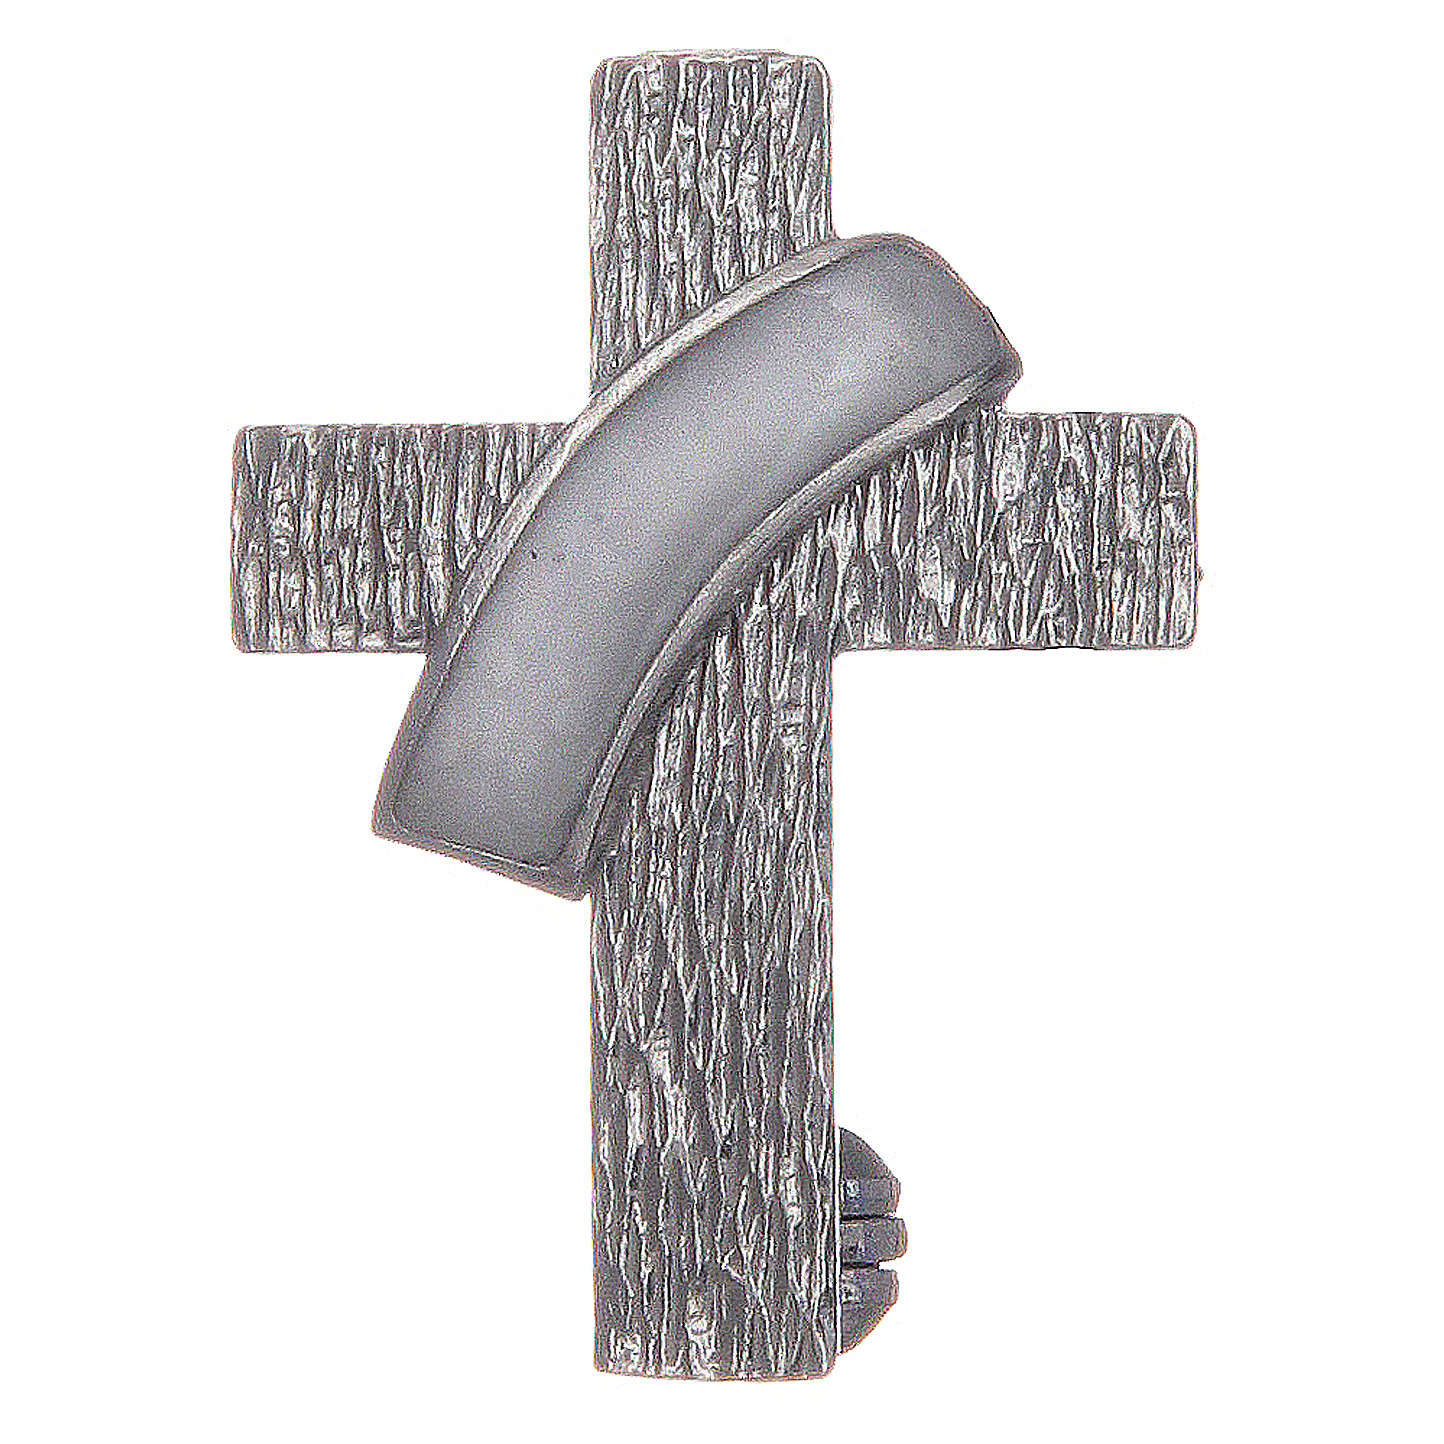 Deacon cross lapel pin in 925 silver and white enamel 4